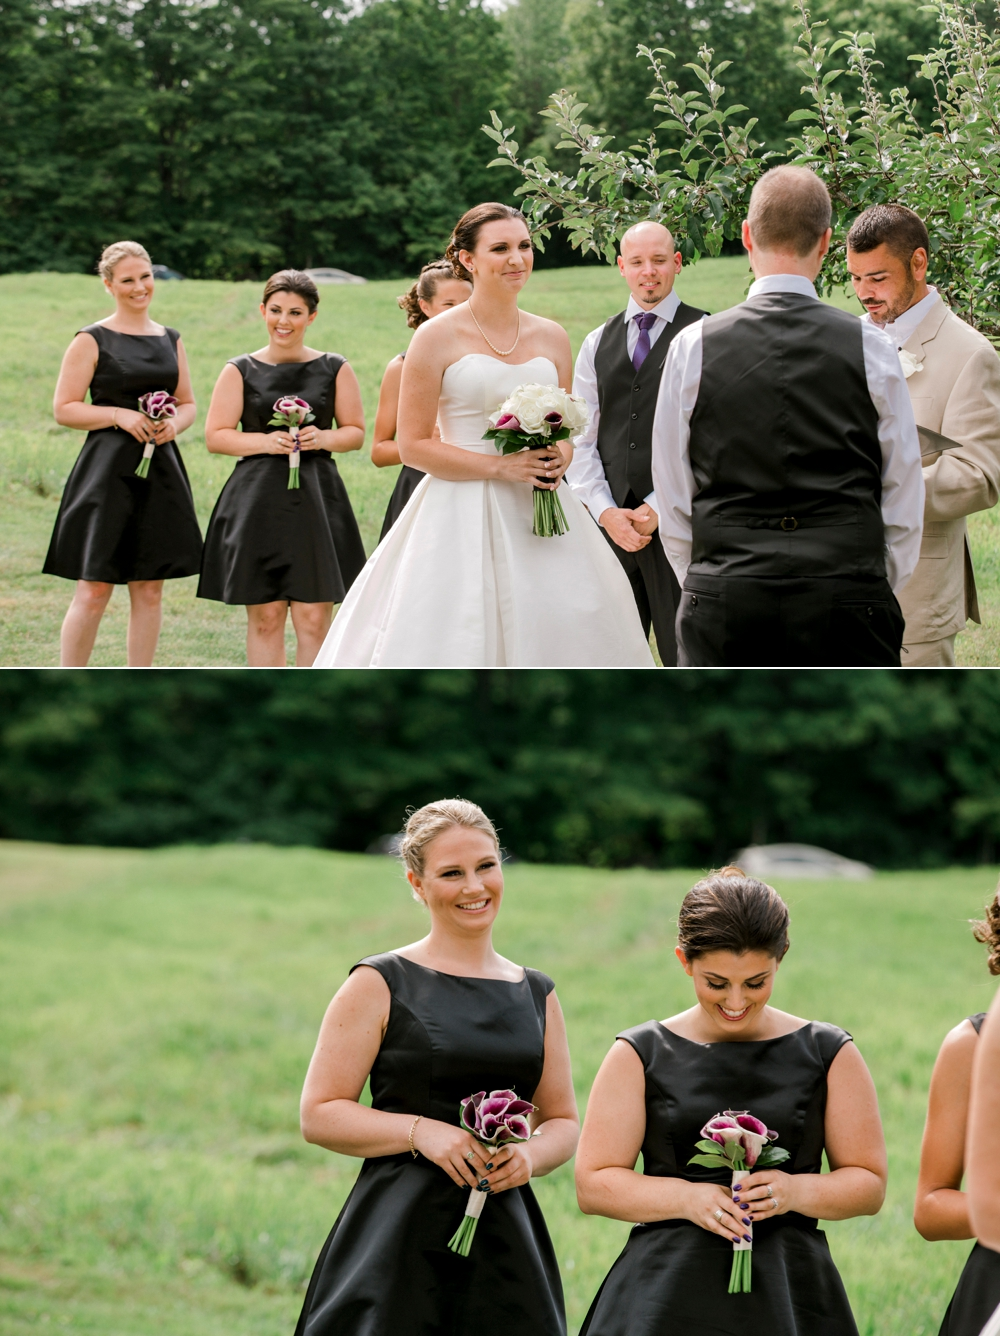 SomerbyJonesPhotography__VermontWedding_VTWedding_BackyardVermontWedding_0014.jpg